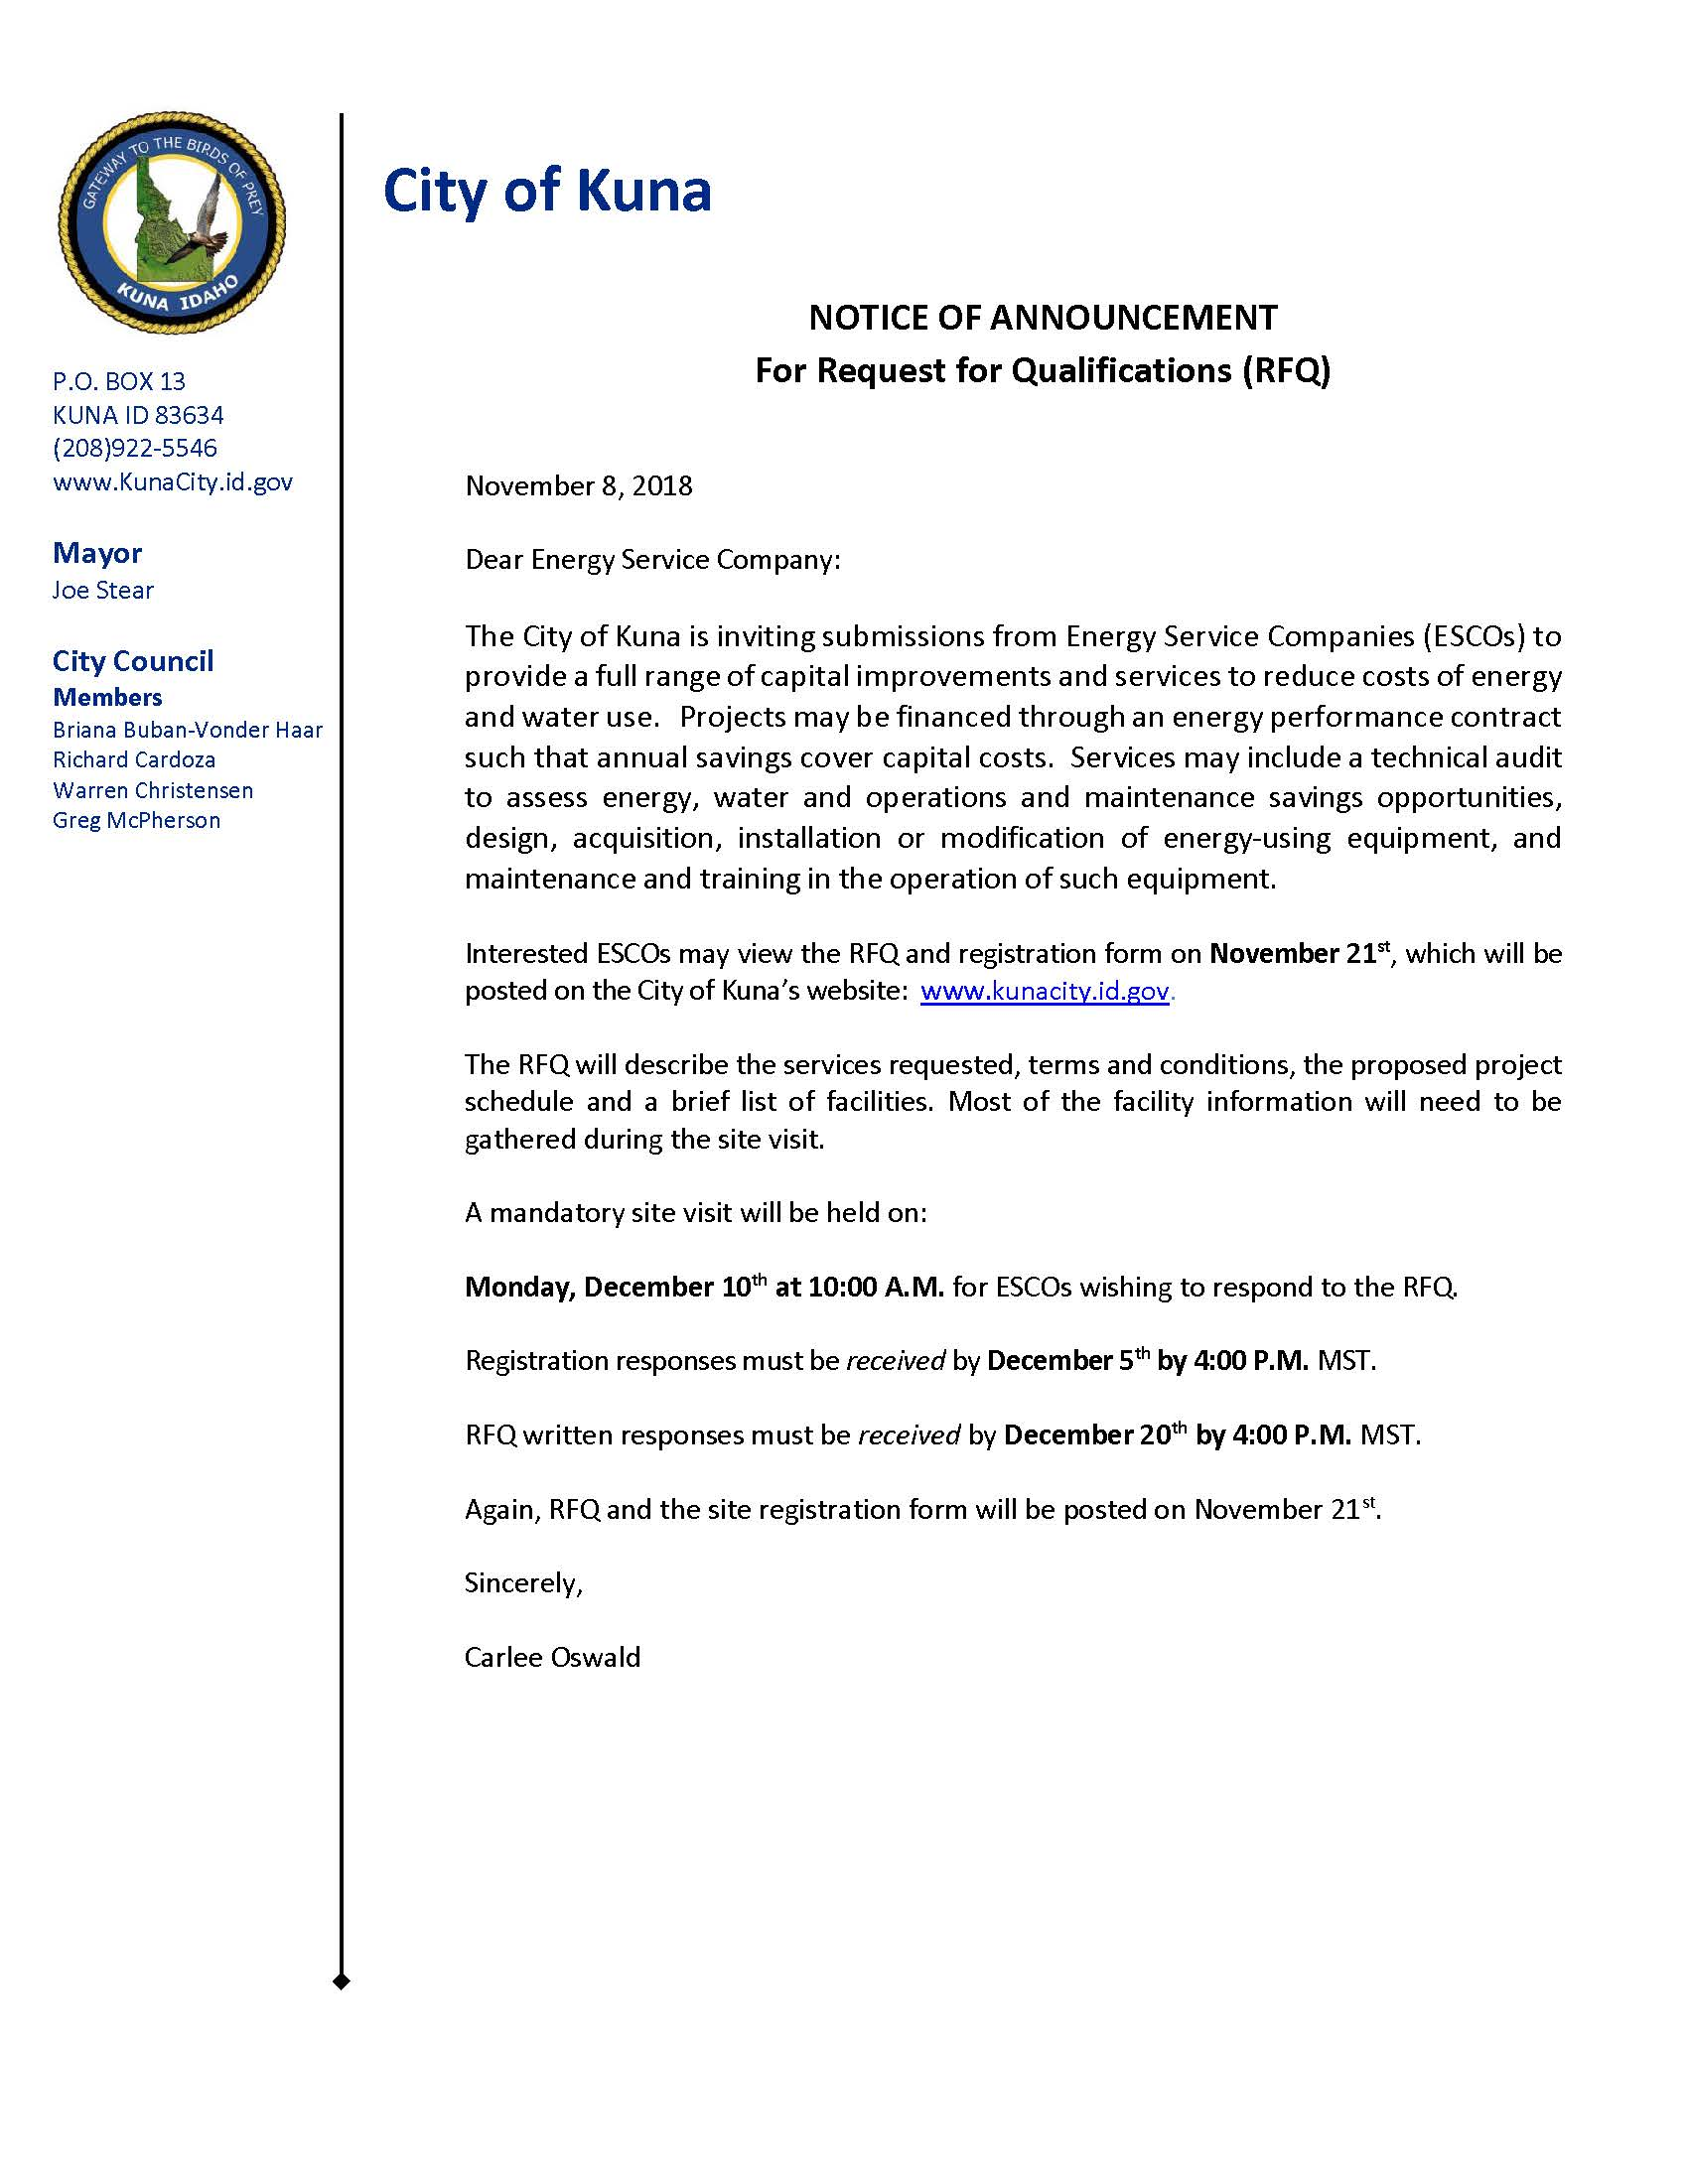 Notice of Announcement - RFQ Energy Service Companies.jpg